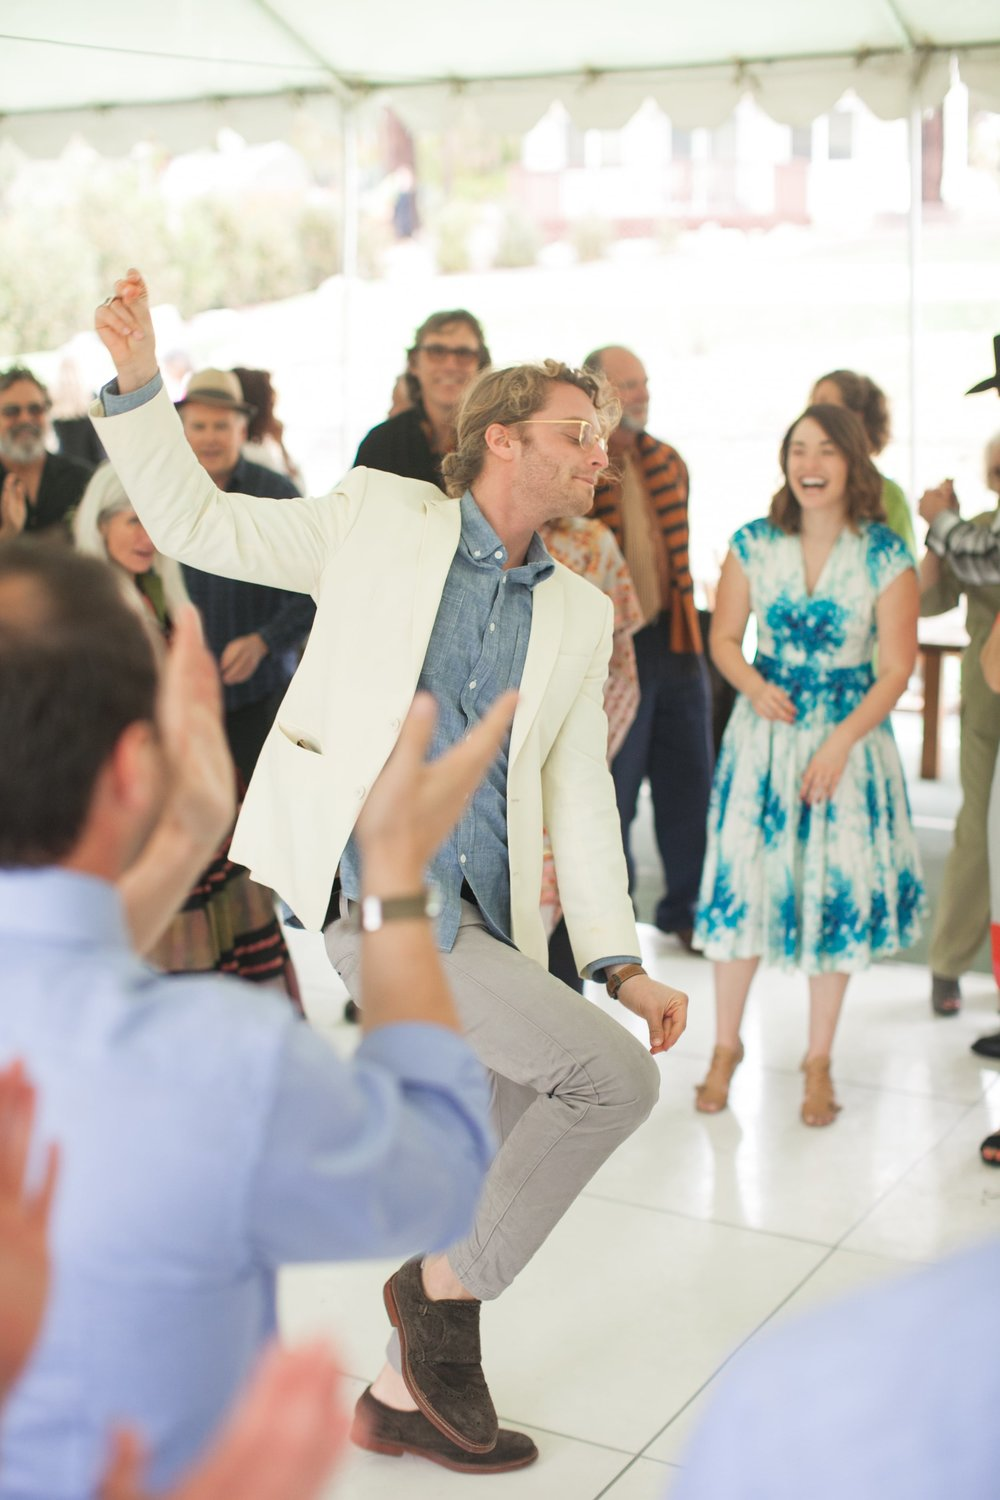 HavingaBlastDancingGettingintheGrooveSanDiegoWeddingPhotographyShewandersPhotography.jpg